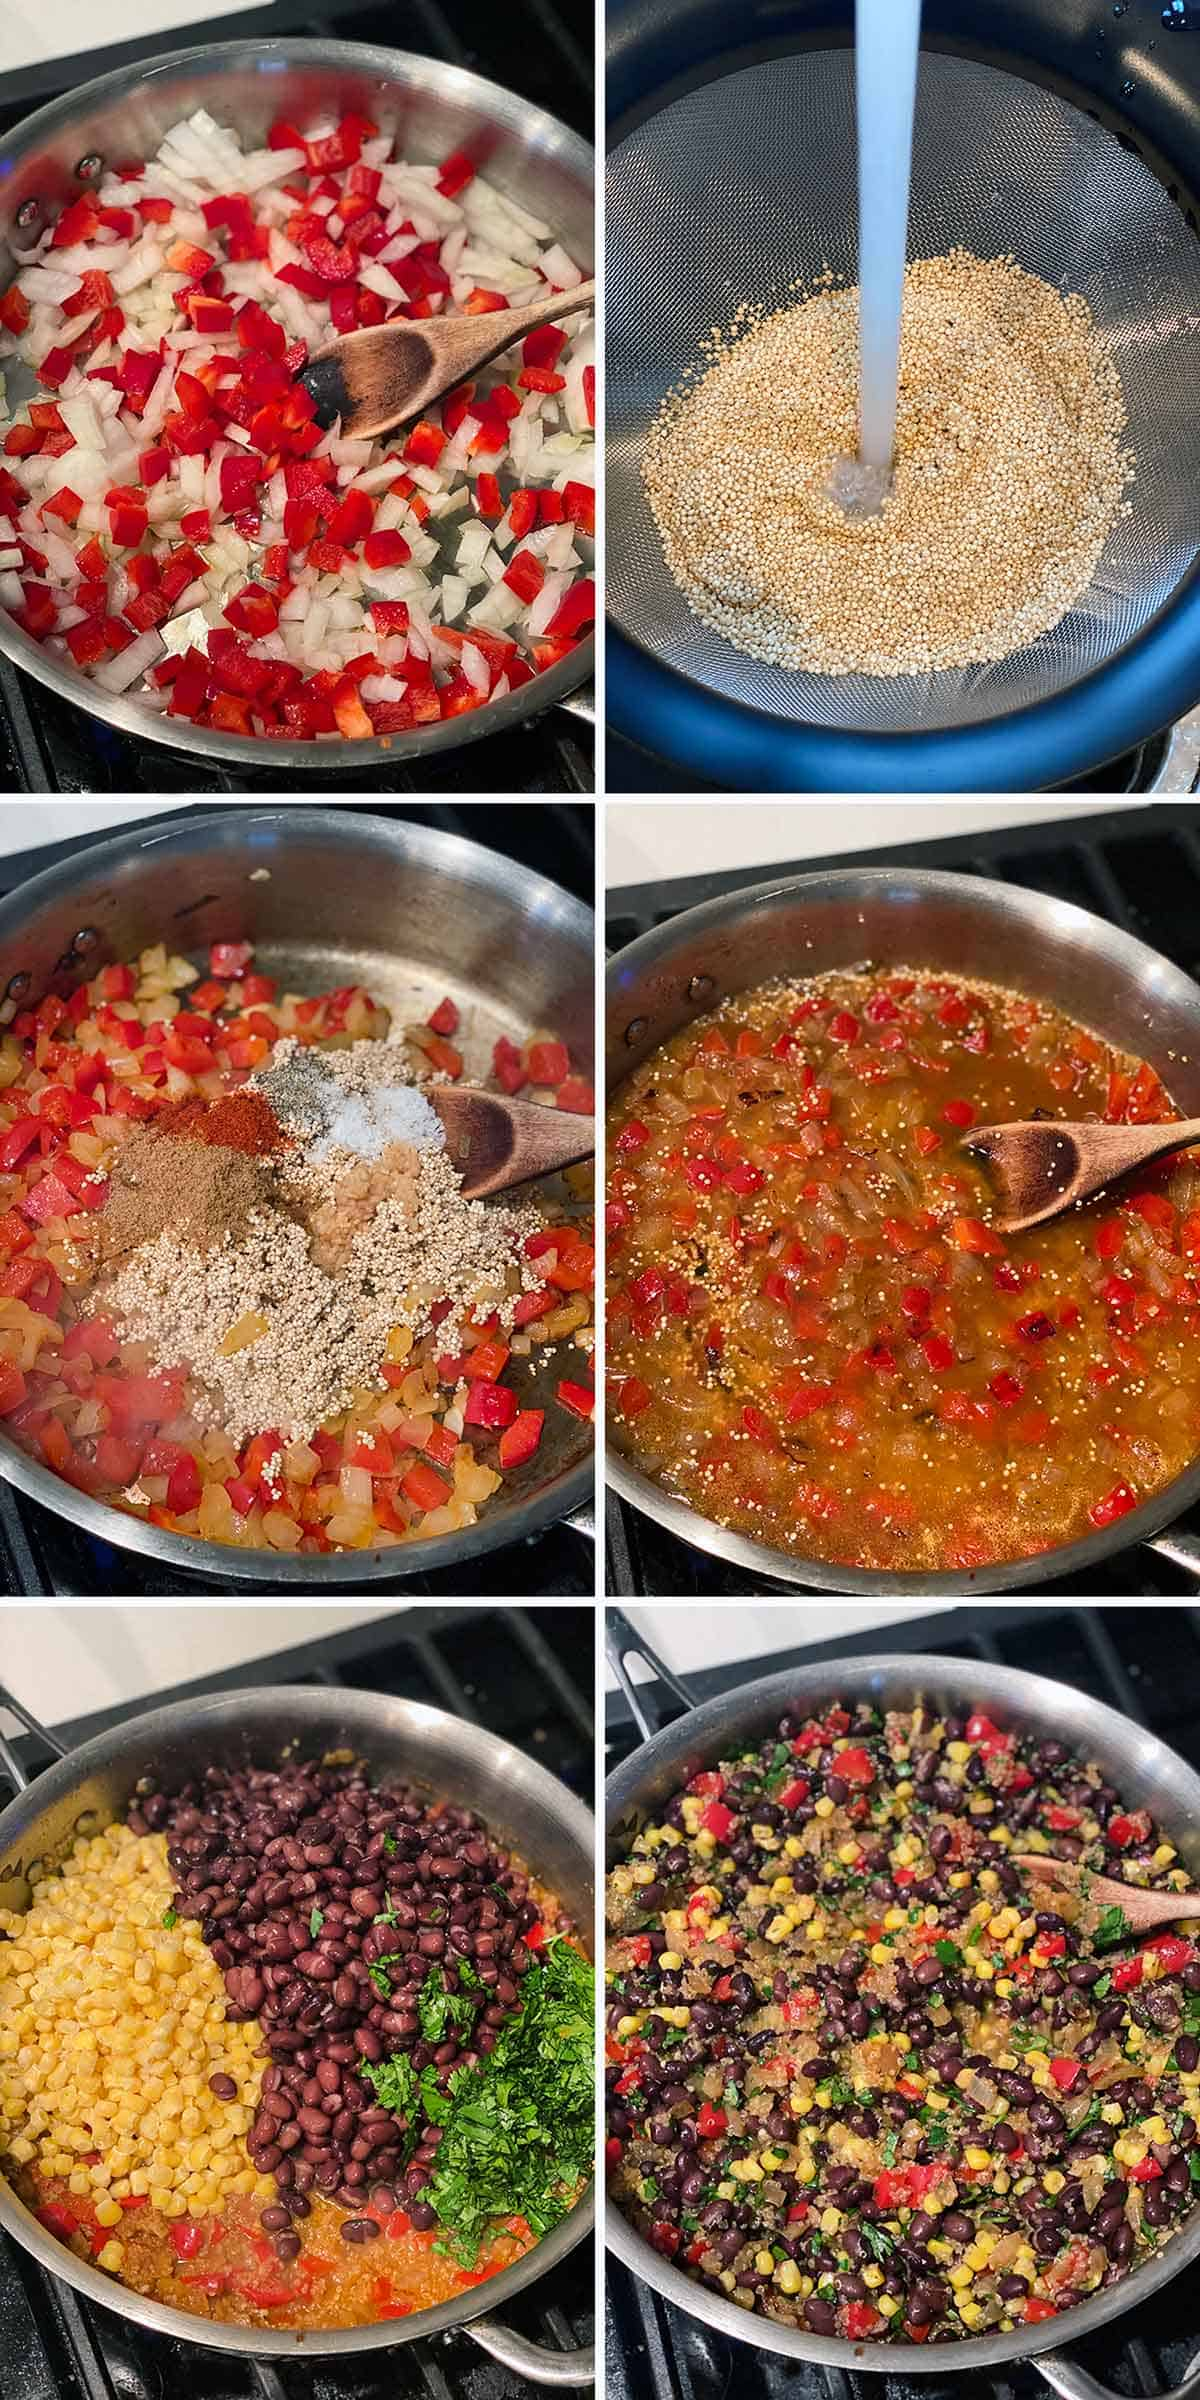 Process collage showing how to make quinoa and black beans with peppers and onions in one pot.